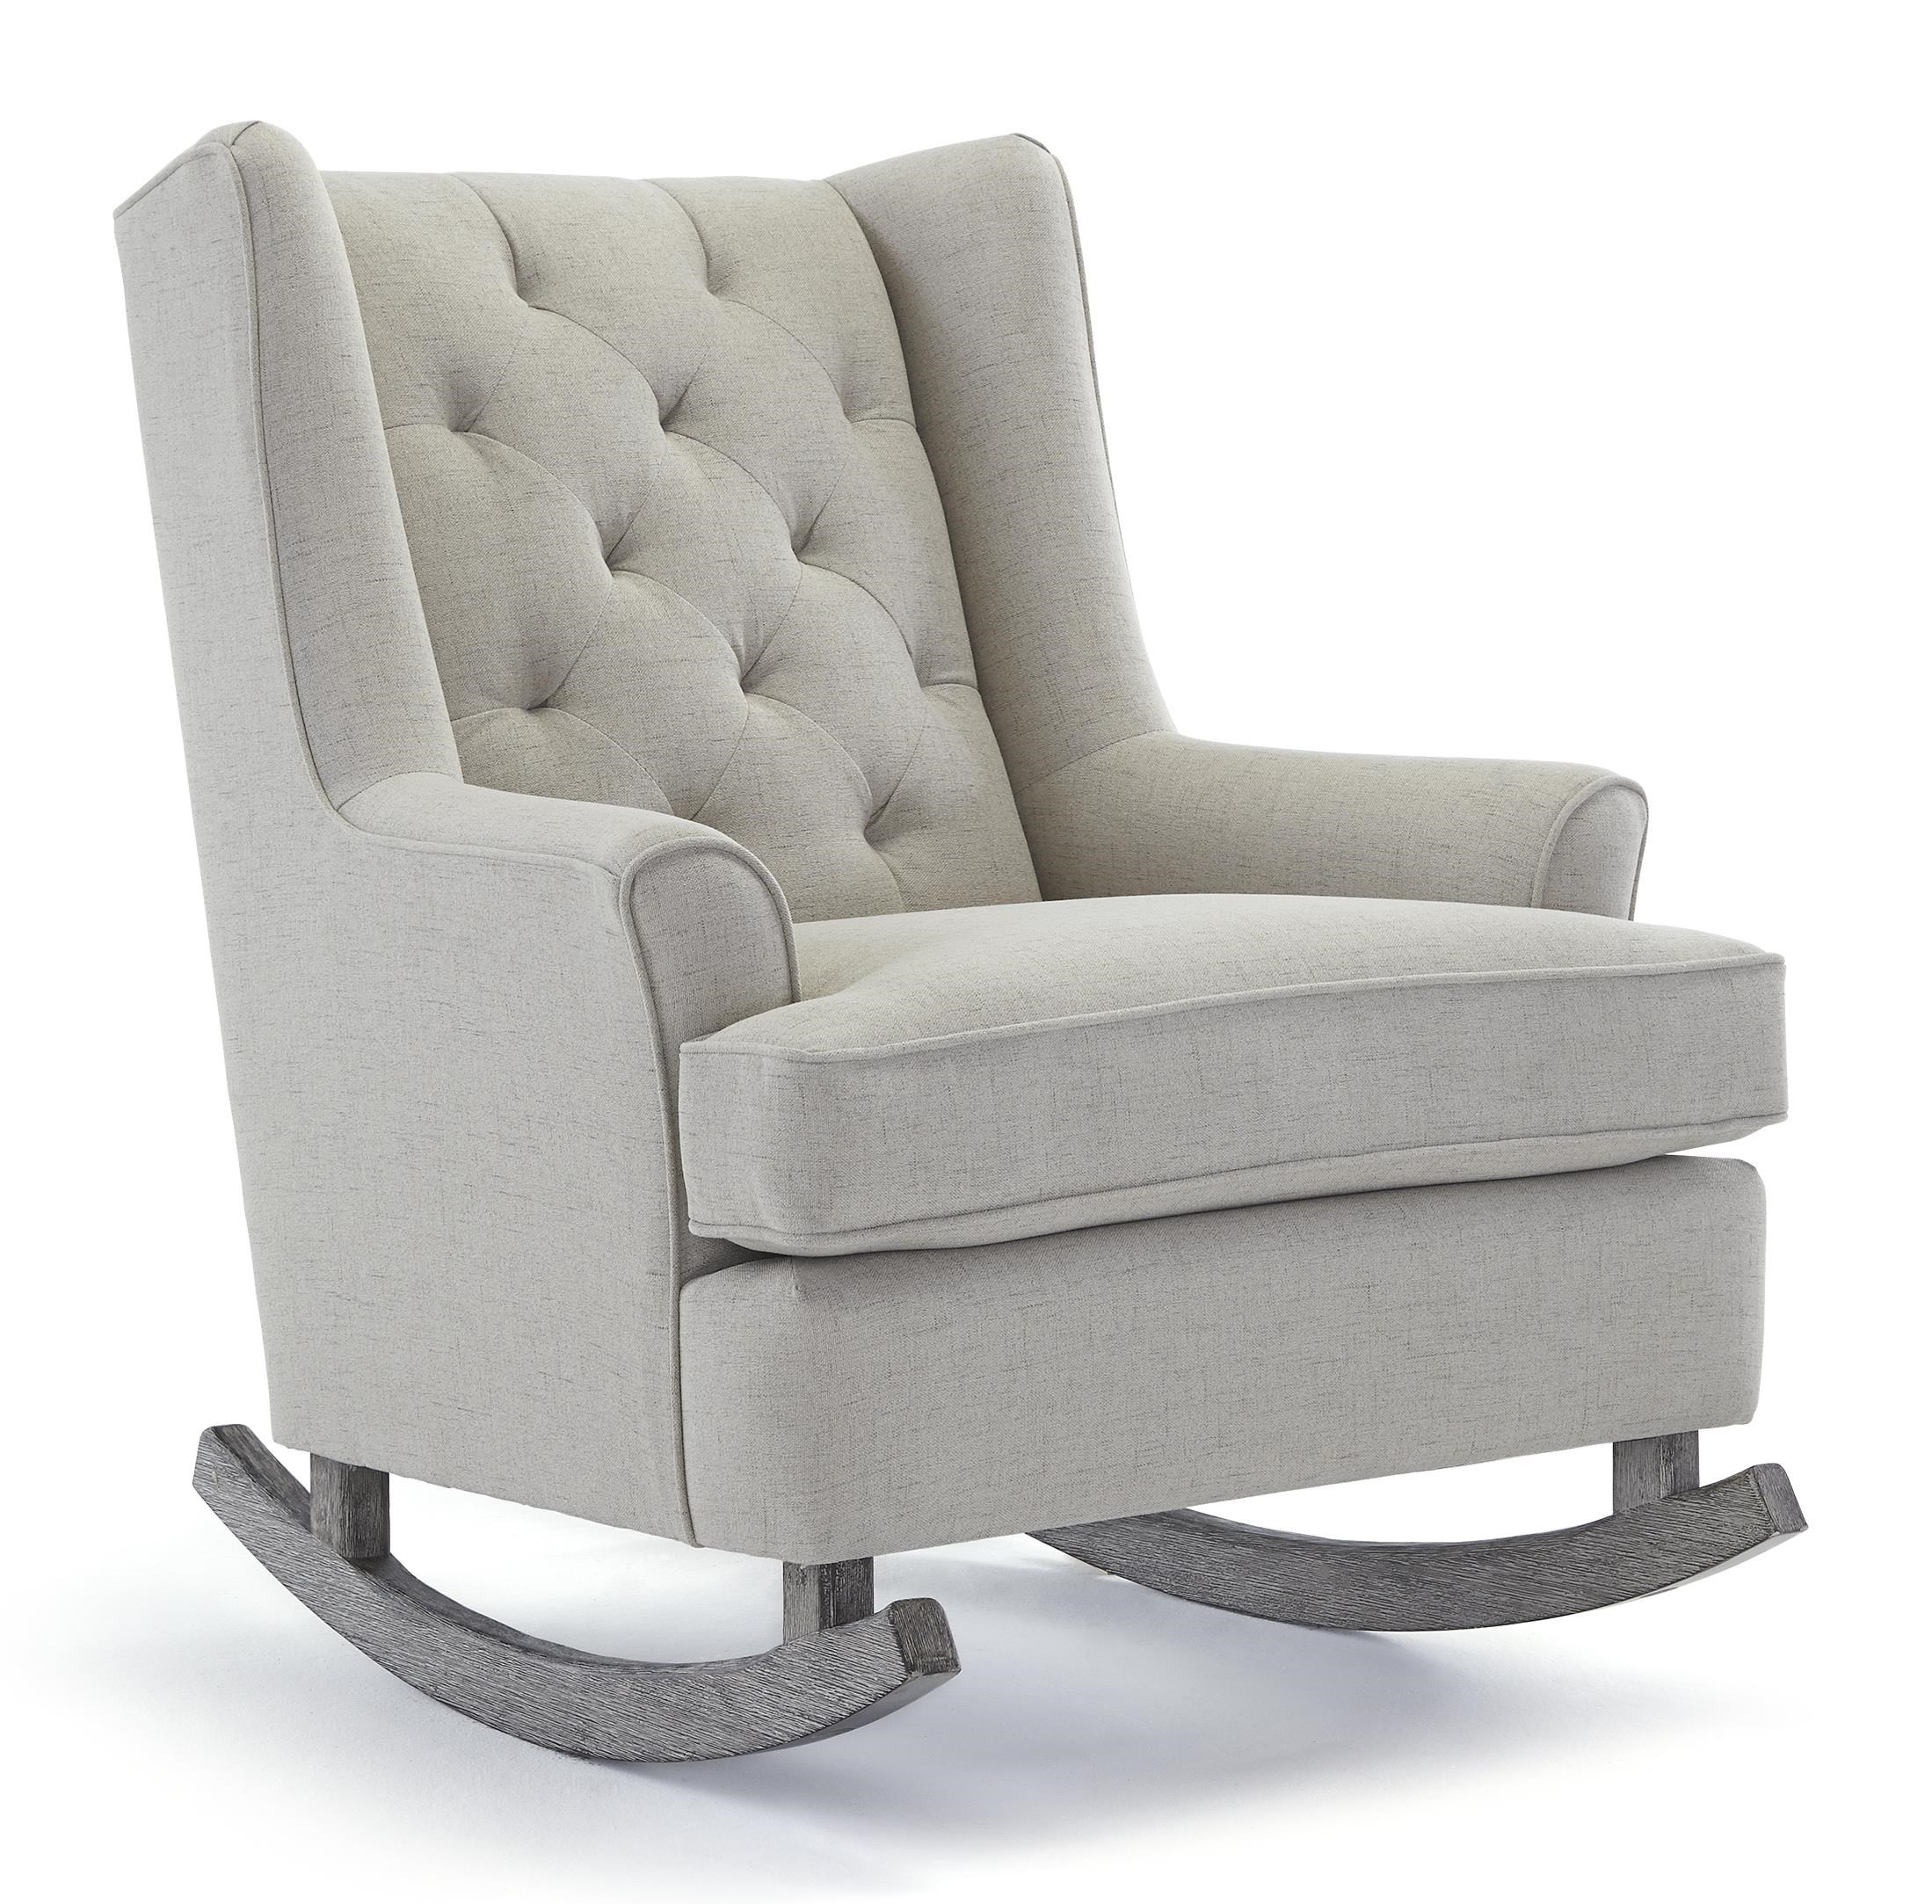 besthf com chairs what is a jerry chair best storytime series swivel and ottomans ottomanspaisley rocking